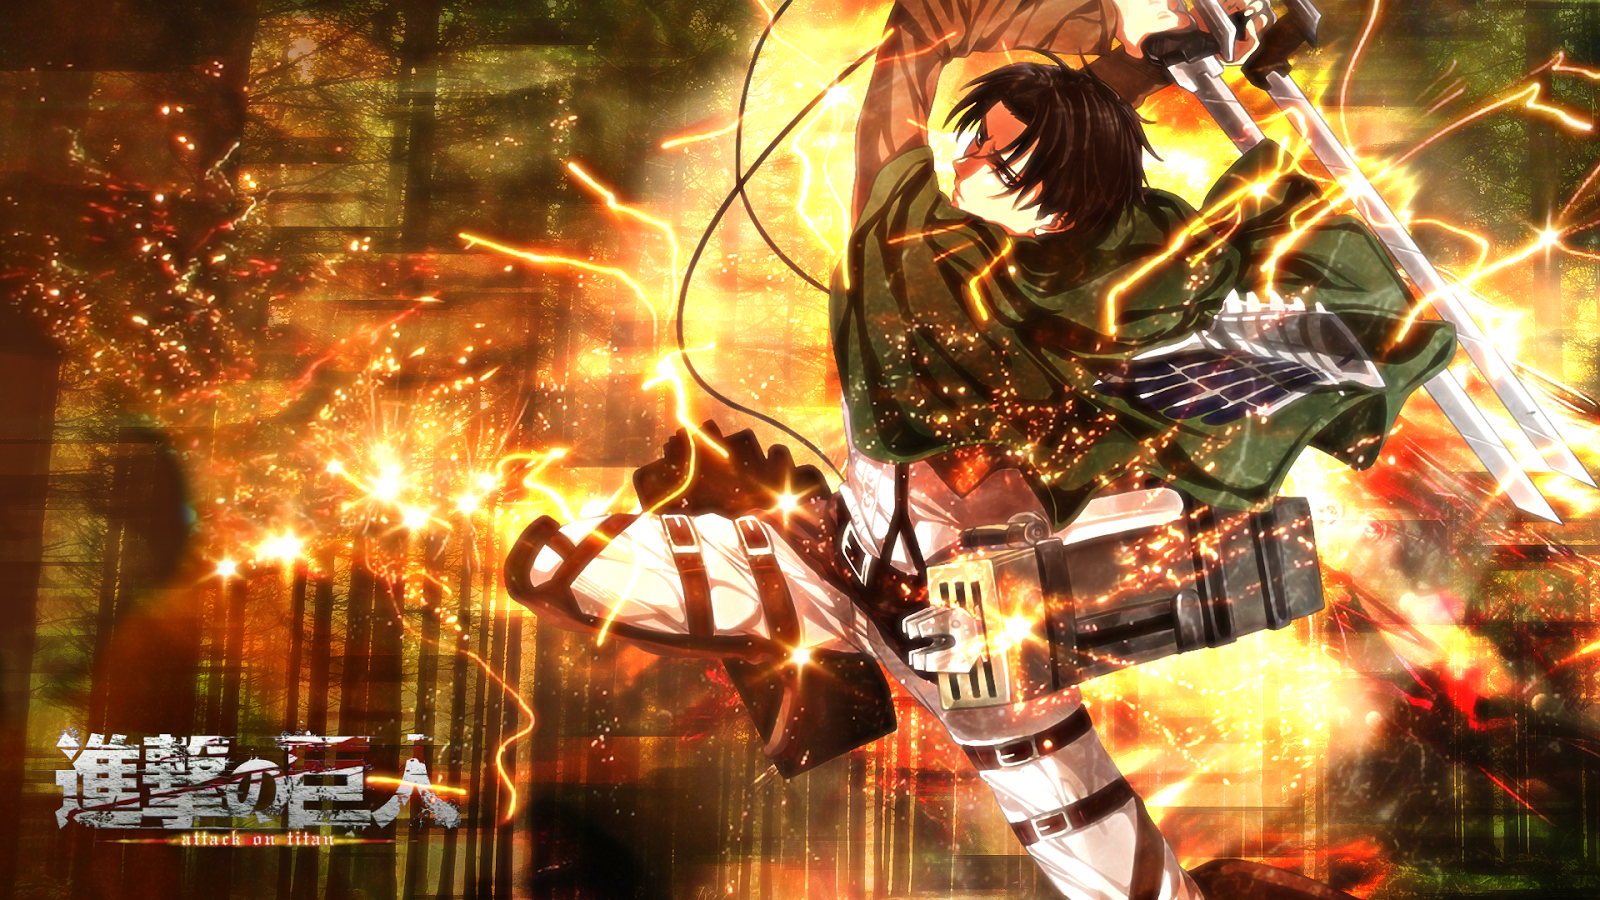 Attack On Titan 1920 X 1080 Wallpapers Latest Hd Wallpapers Attack On Titan Attack On Titan Levi Anime Wallpaper